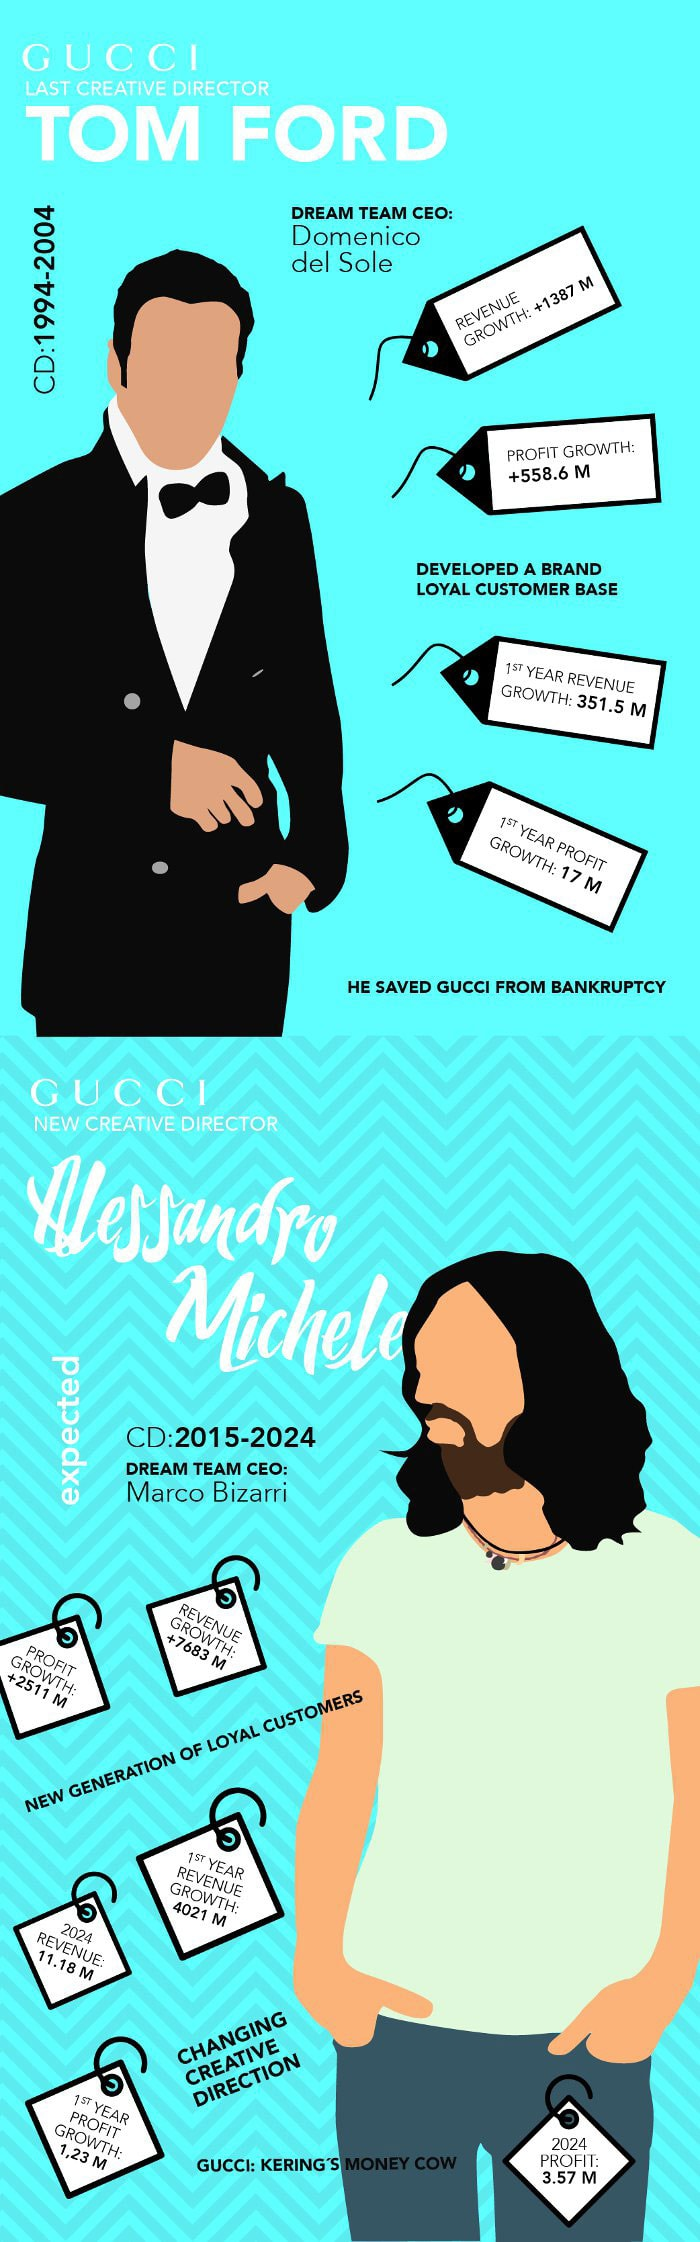 Geek-Chic Vs Sex Bomb: Las diferencias entre Alessandro Michele & Tom Ford de Gucci